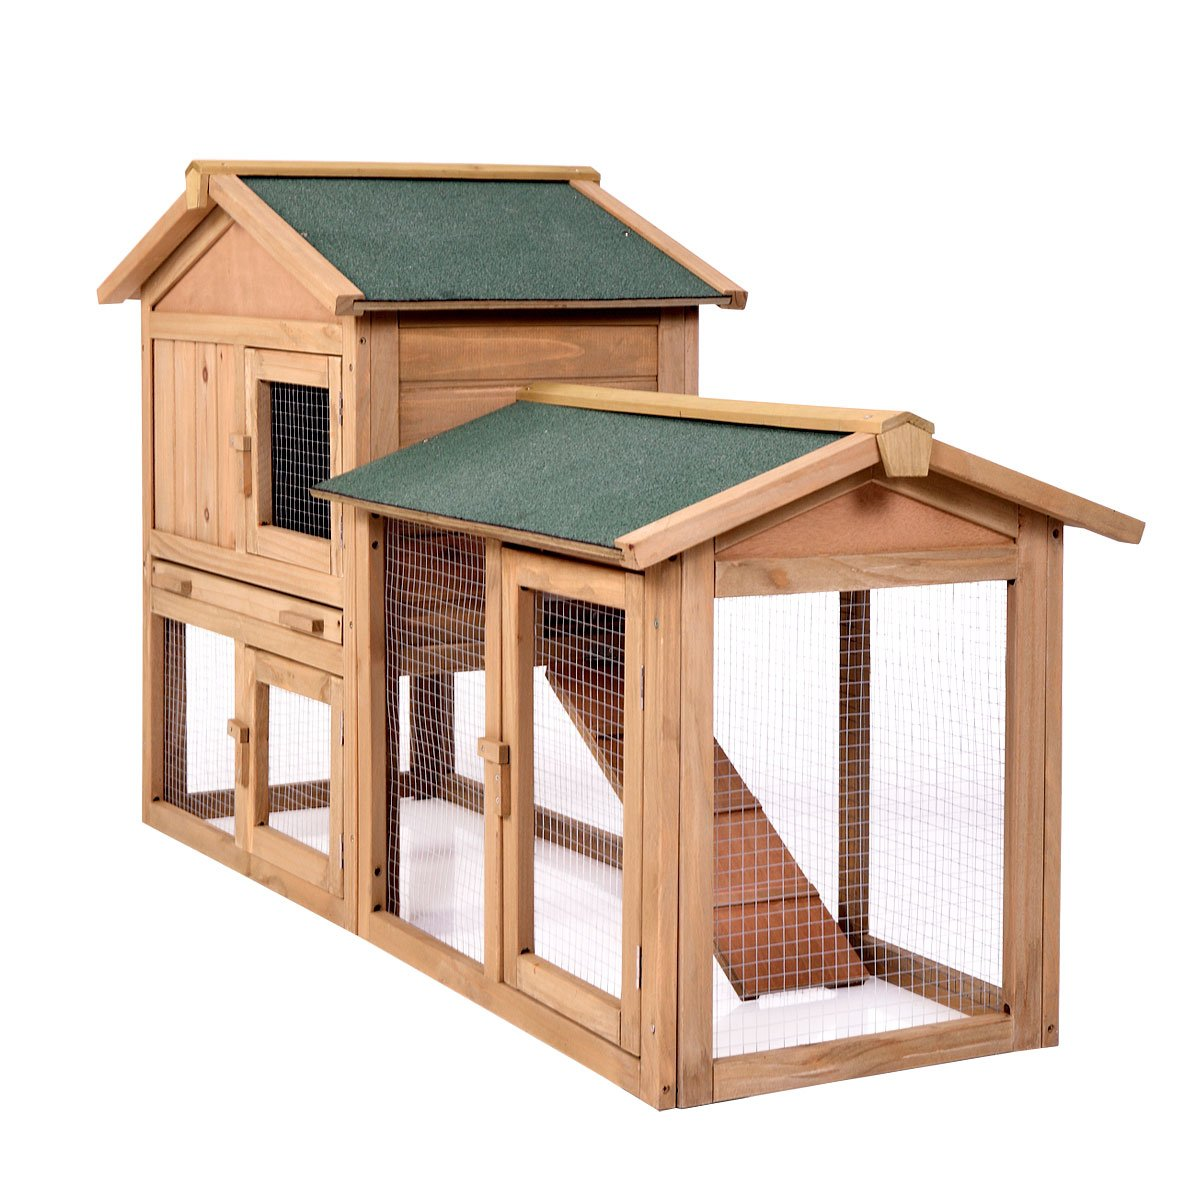 P PURLOVE Wood Bunny Hutch 54'' Large 2 Story Outdoor Bunny House with Removable Tray & Ramp, Backyard Garden Rabbit Cage/Guinea Pig House/Chicken Coop Nesting Box for Small Animals by P PURLOVE (Image #6)